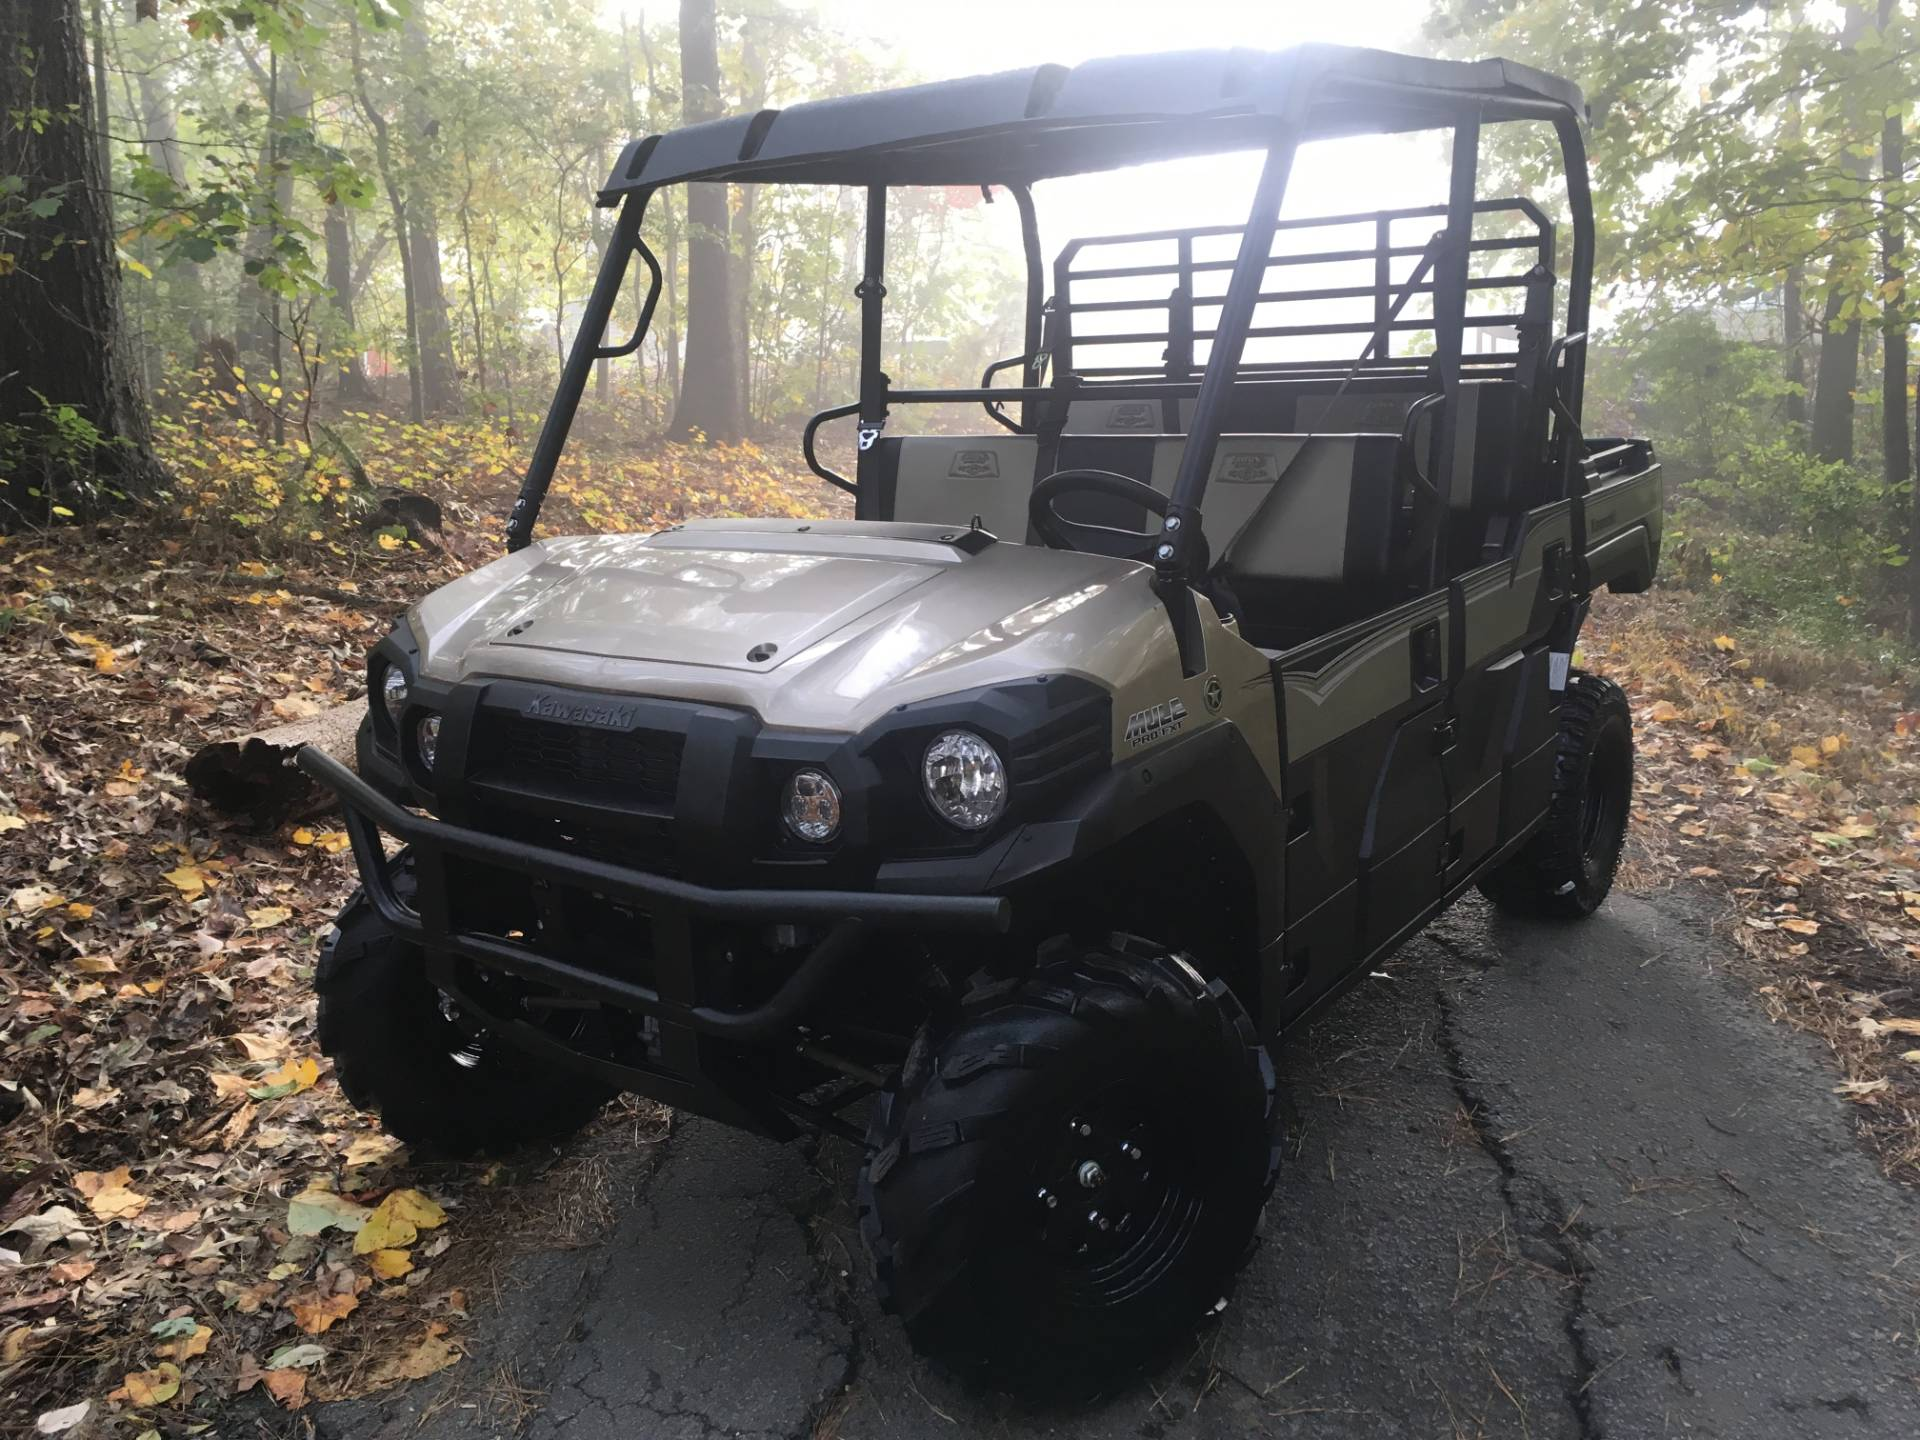 2017 Kawasaki MULE PRO FXT RANCH EDITION 1